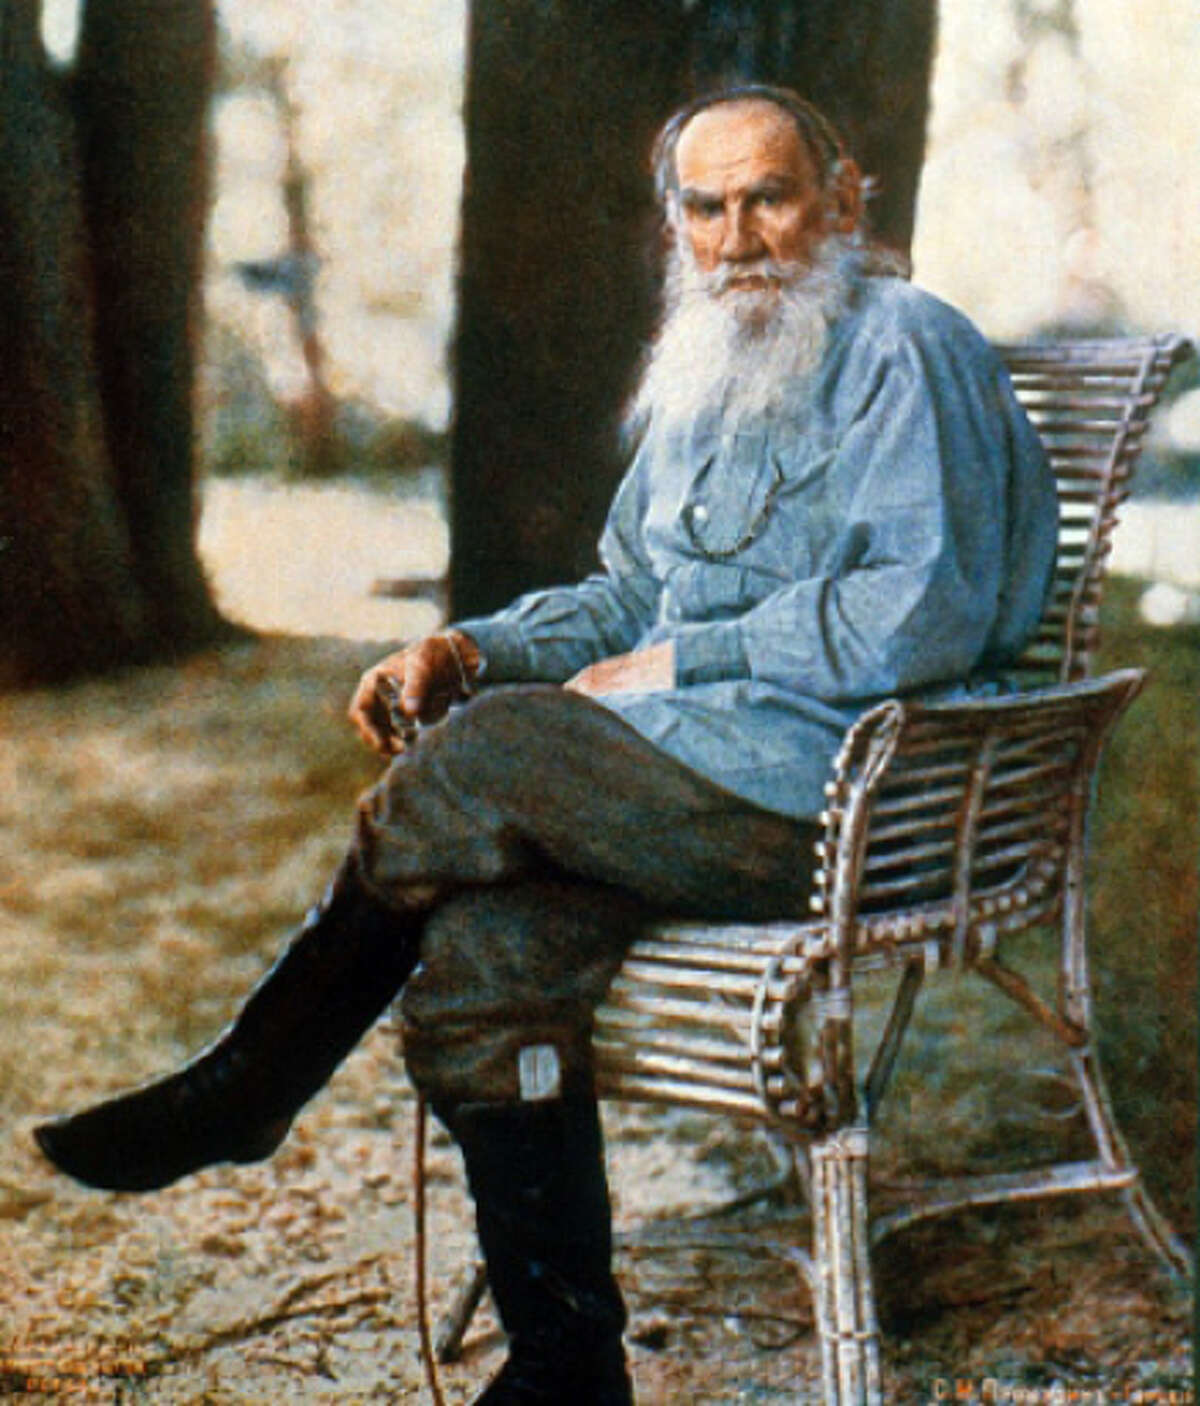 Leo Tolstoy is an example of a writer both engaging and delightful. No easy feat.